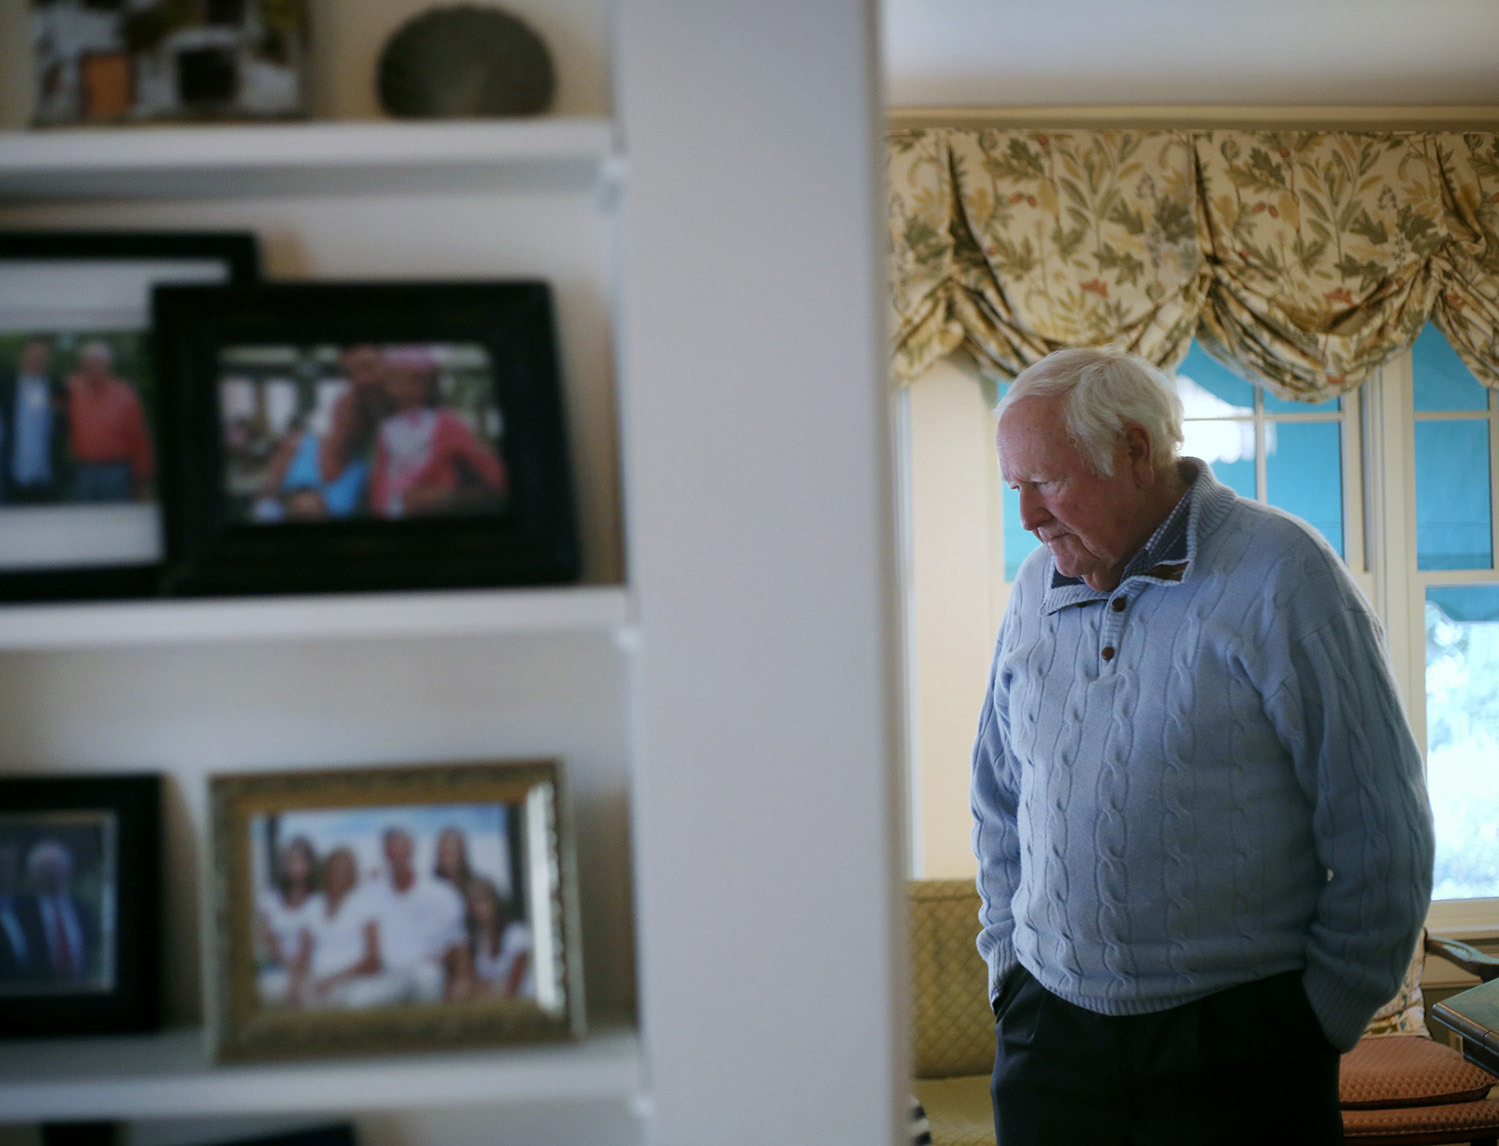 FALMOUTH, ME - SEPTEMBER 22: John Marr of Falmouth whose wife Josephine has been battling Alzheimer's for the last seven years recently donated $2 million to Brigham & Women's Hospital in Boston to fund research. John talks to his wife as she rests at their home in Falmouth. (Photo by Derek Davis/Staff Photographer)